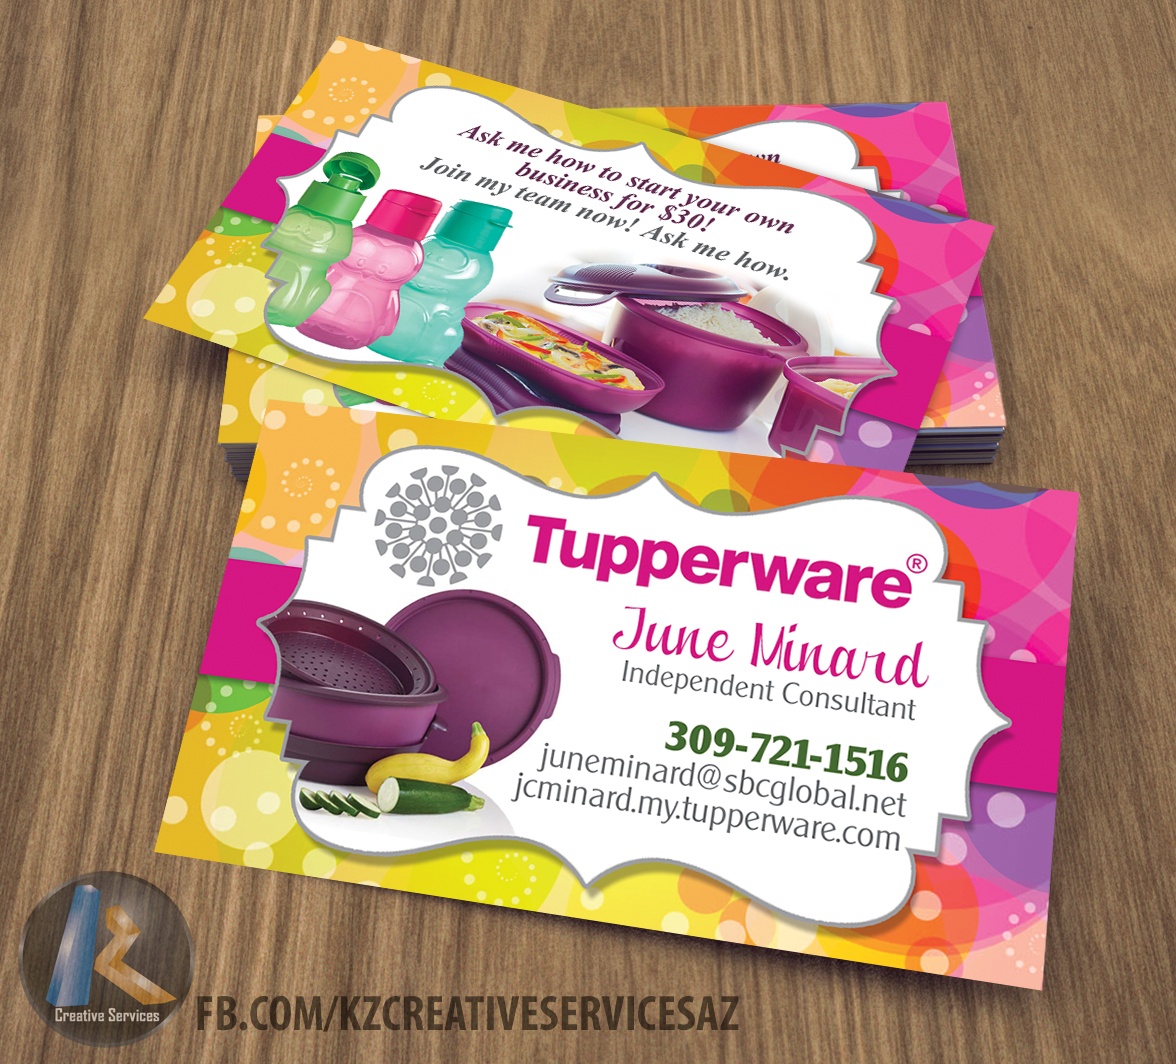 tupperware business cards style 3 · kz creative services